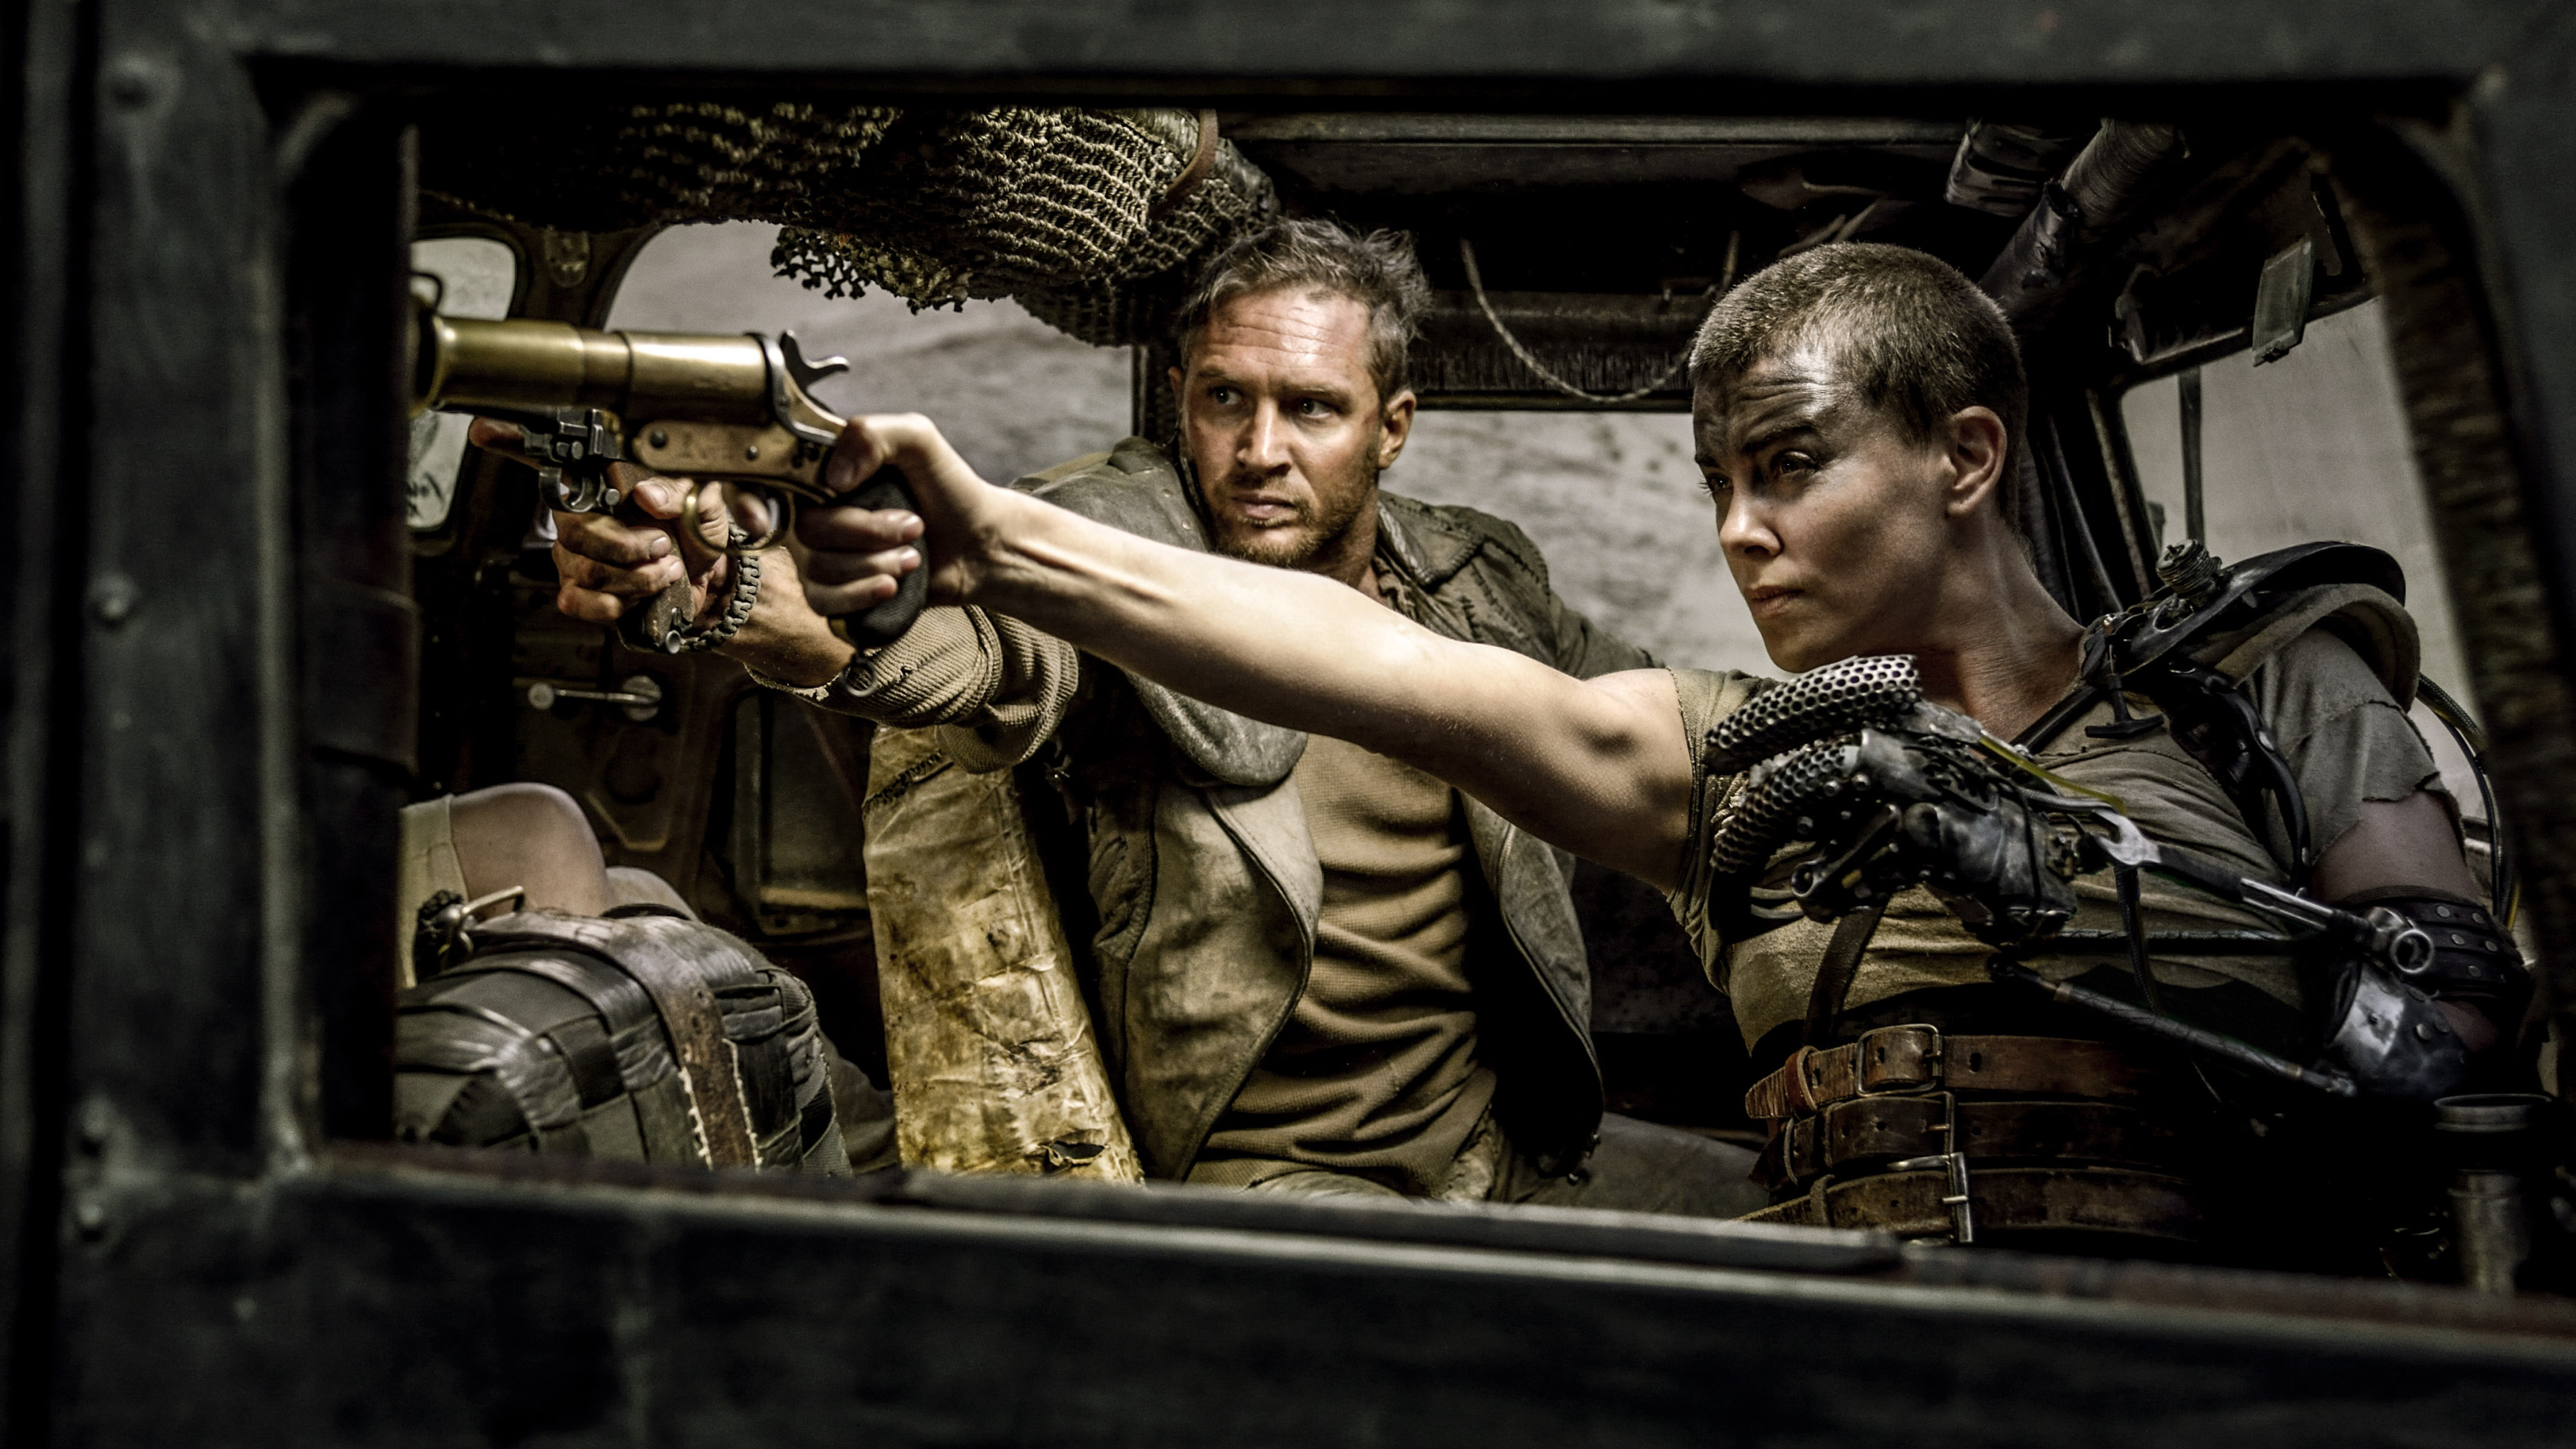 The Women Pull No Punches In Fiery, Feminist 'Mad Max' : NPR